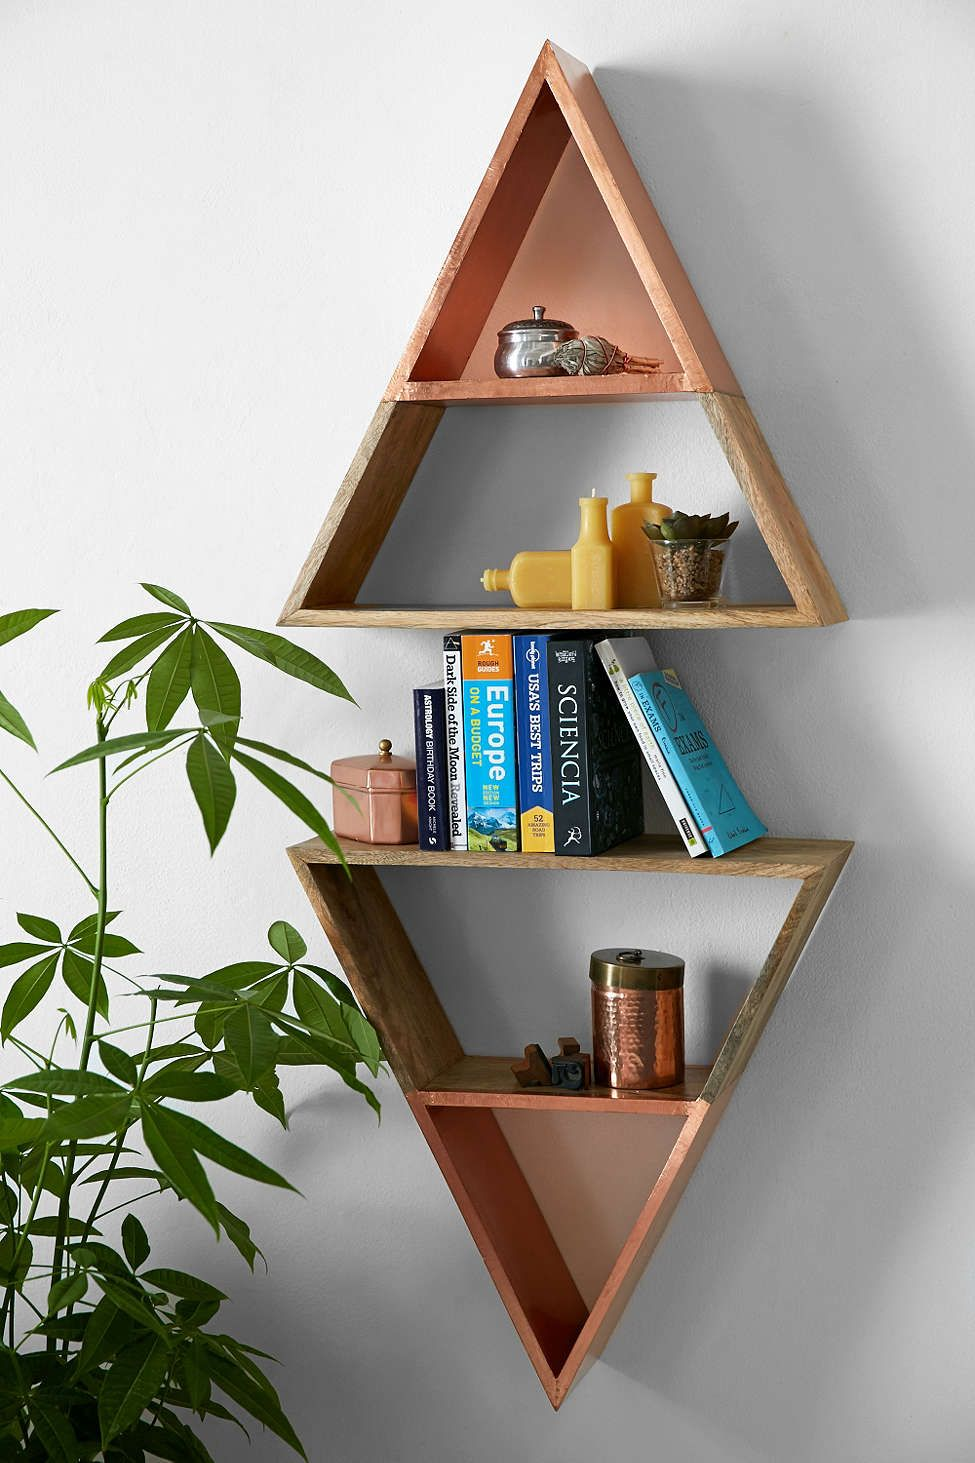 Pyramid Shelf | Magical thinking, Shelves and Learning